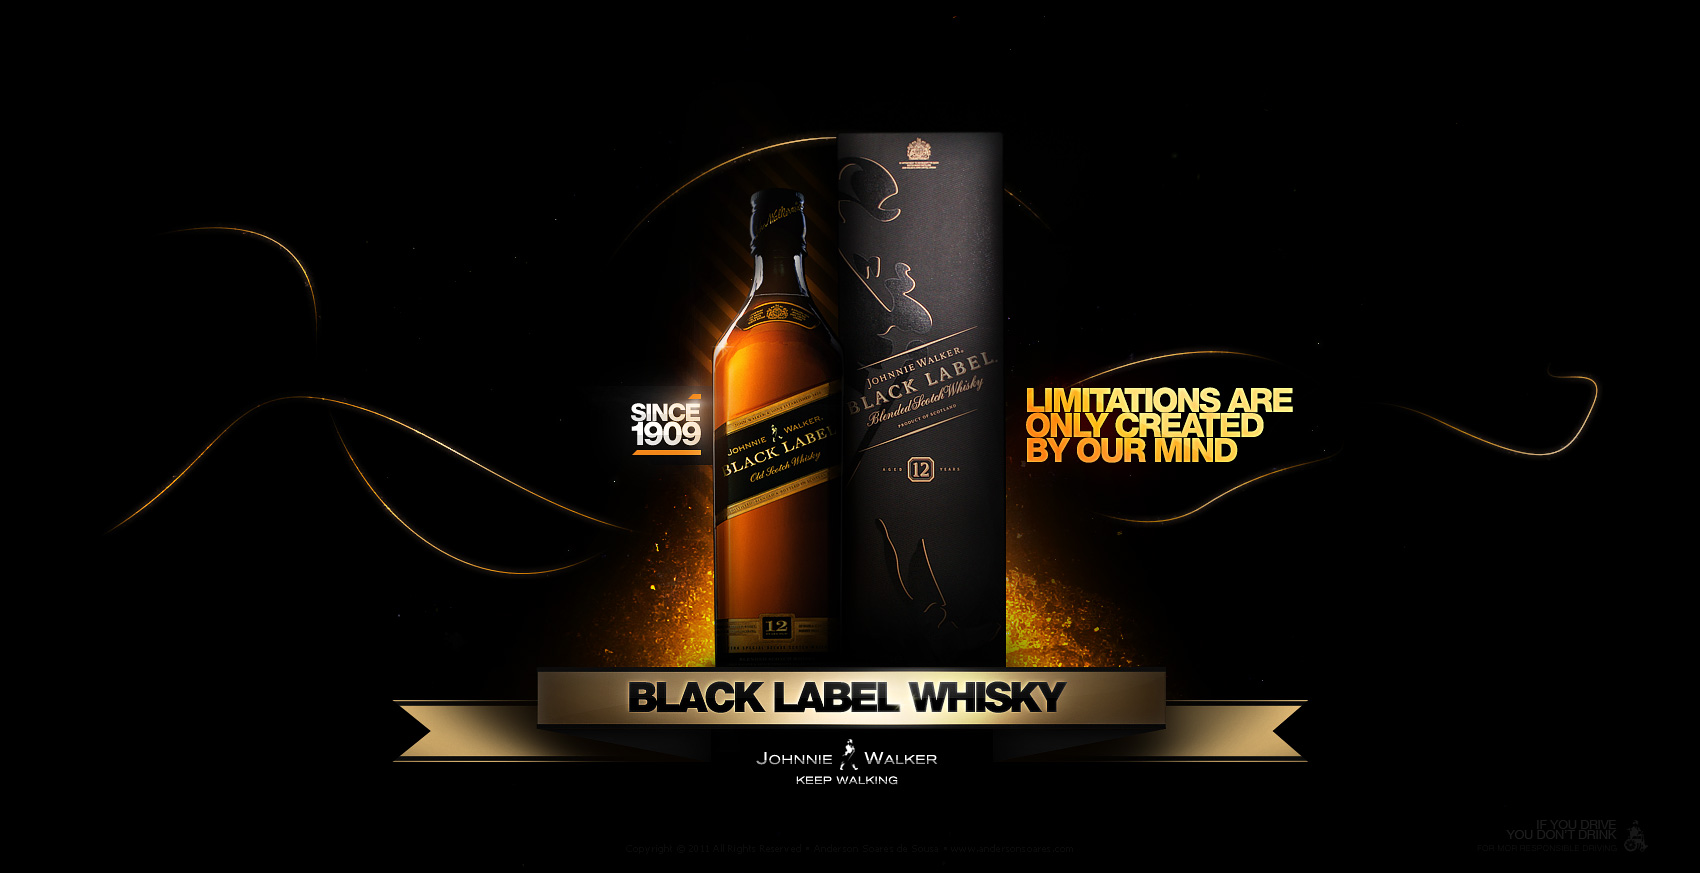 black label 5 виски: